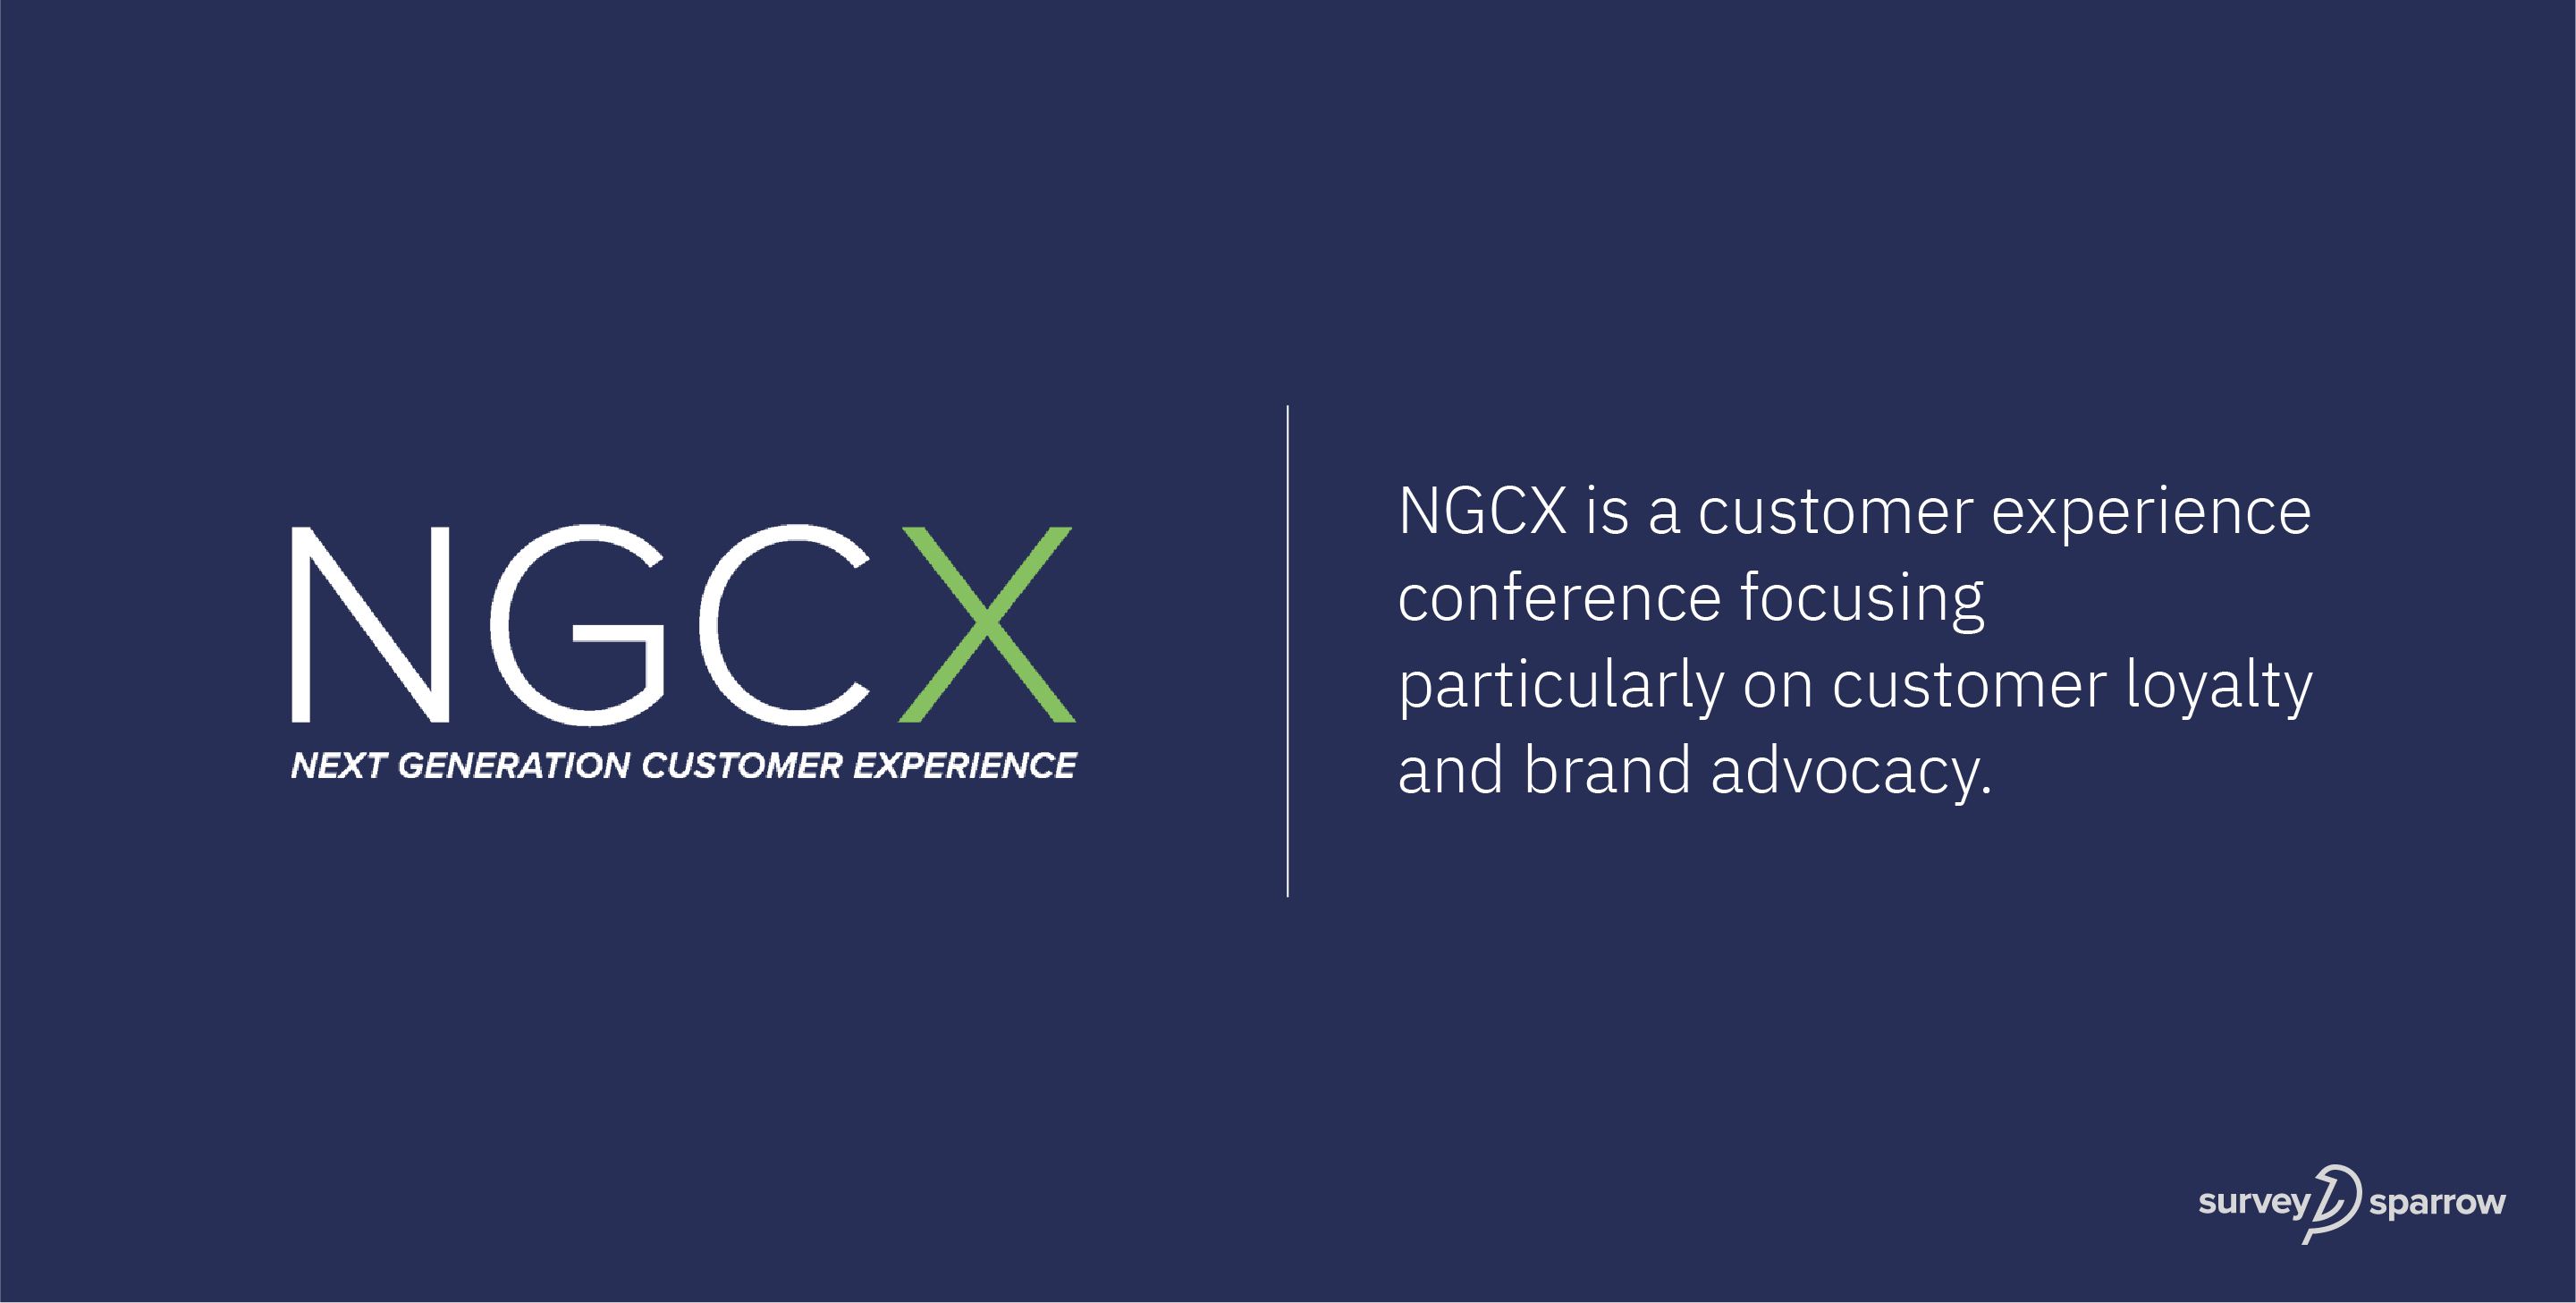 If you are looking to attend customer experience conferences focusing particularly on customer loyalty and brand advocacy, then NGCX is the right platform.